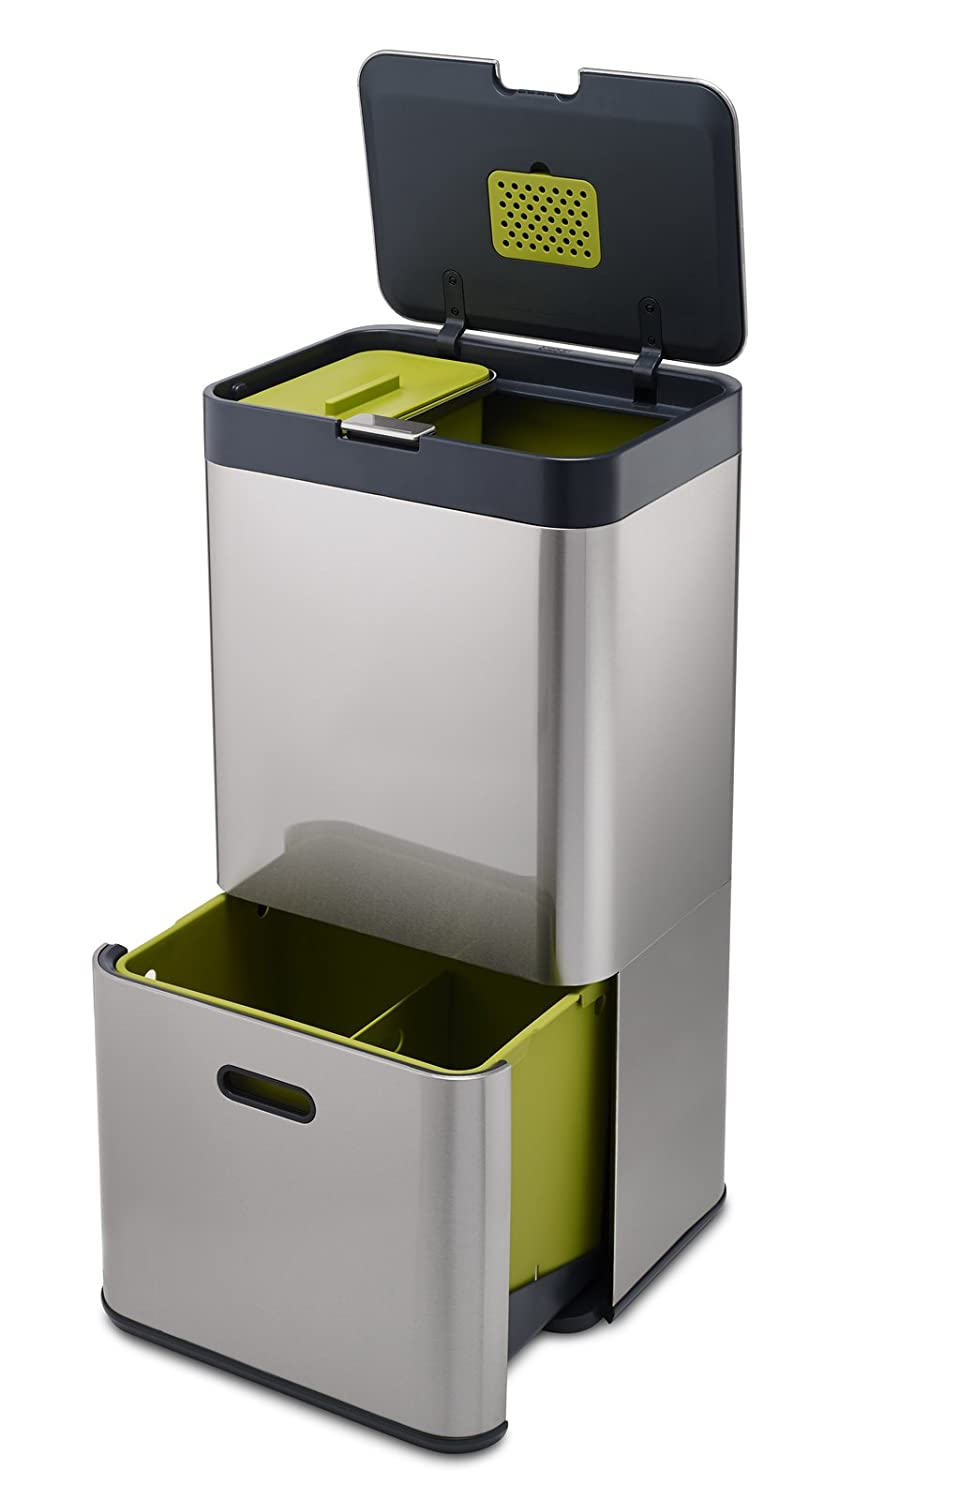 Amazon.com: Joseph Joseph 30022 Intelligent Waste Totem Kitchen ...